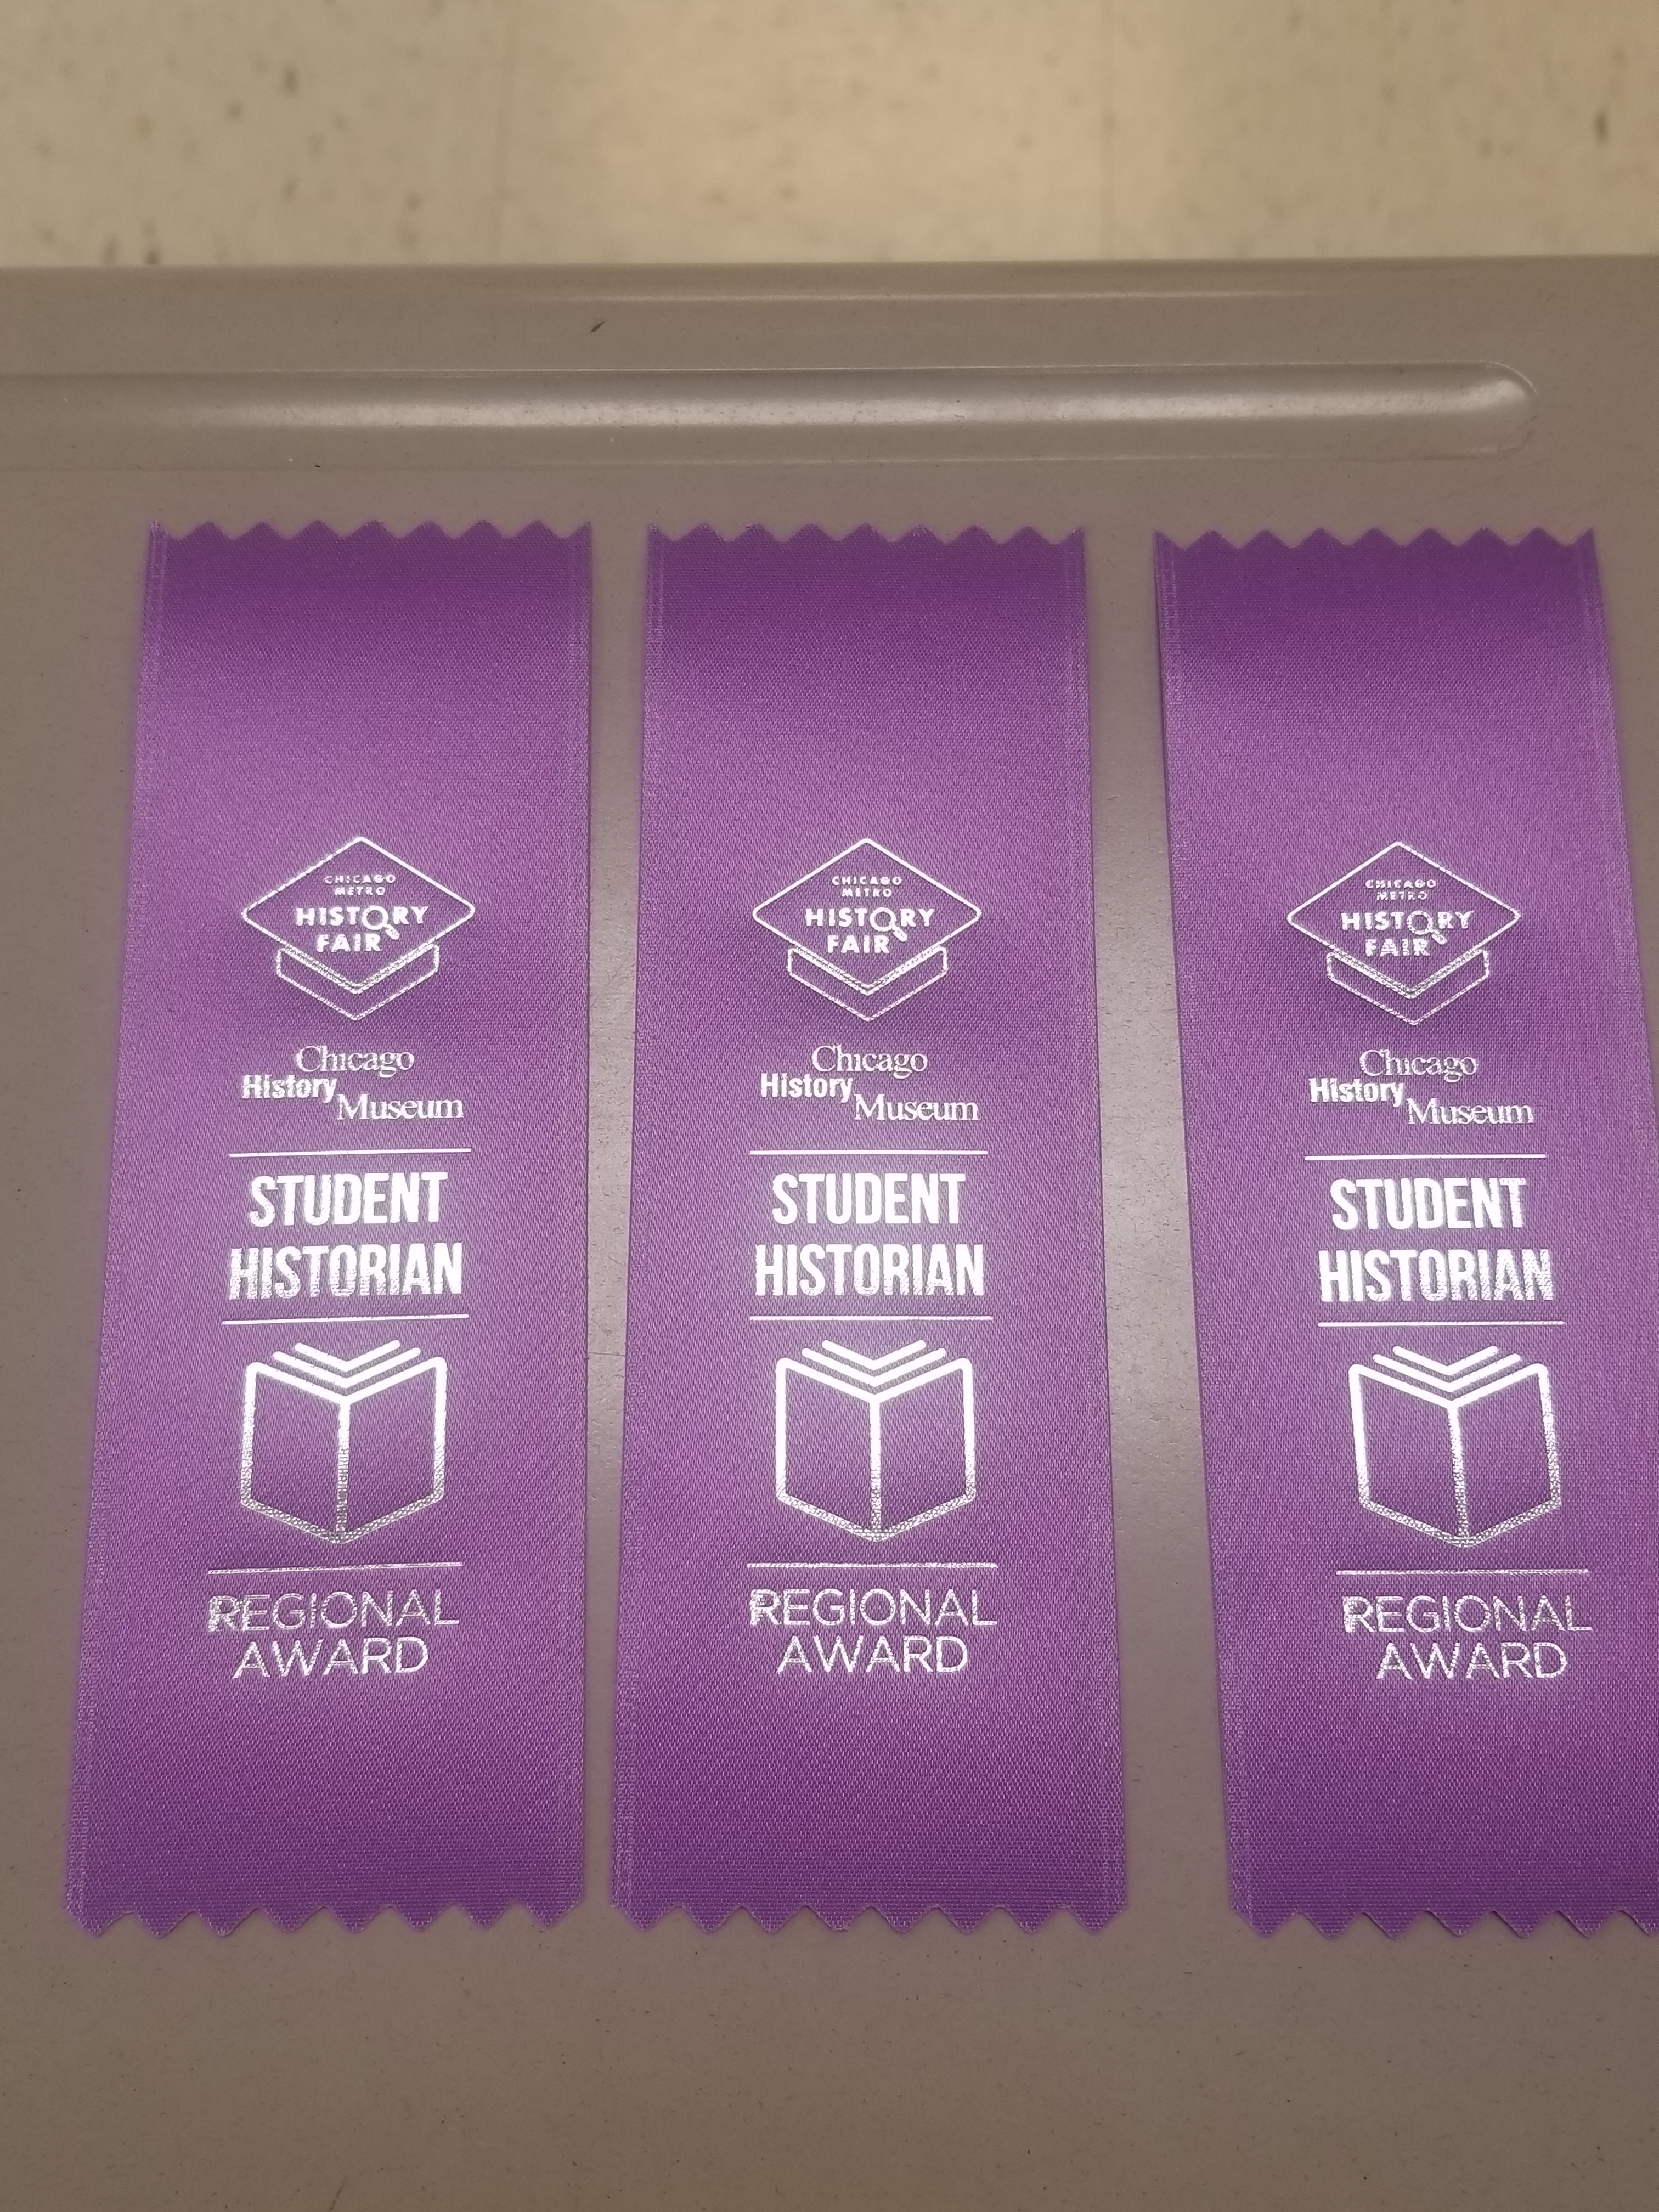 Ribbons were awarded at the fair